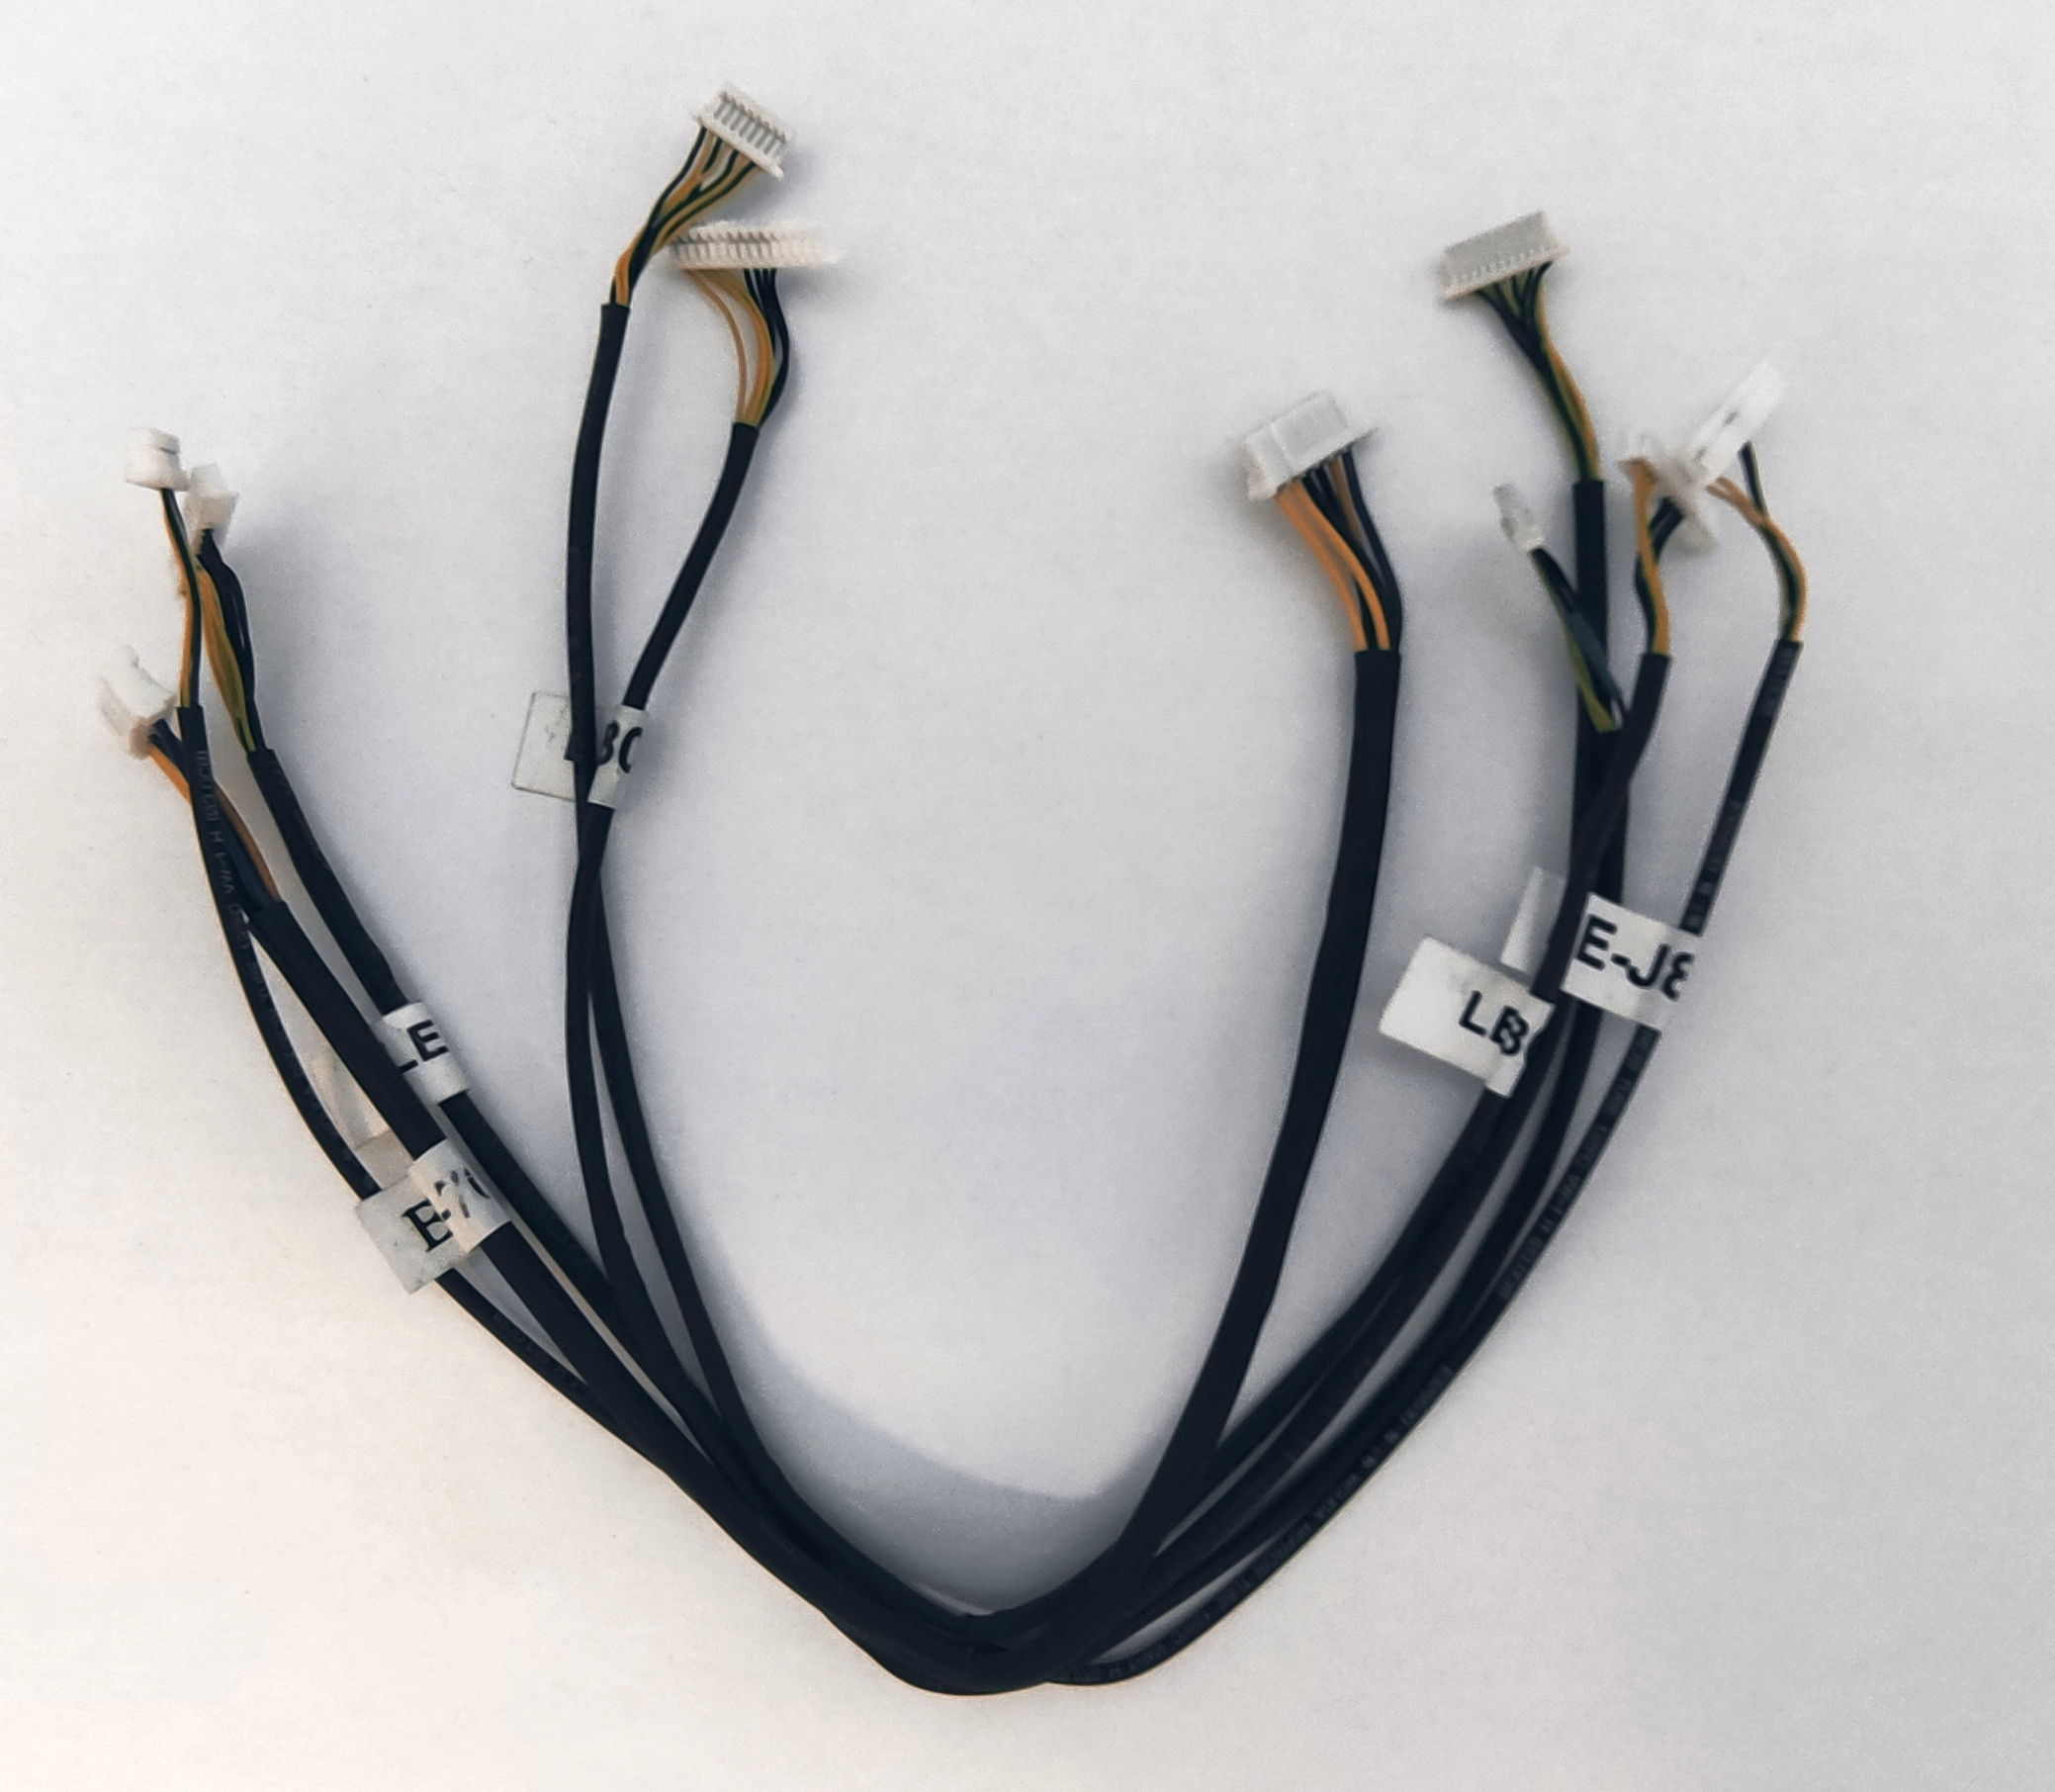 BT-cable-7261164